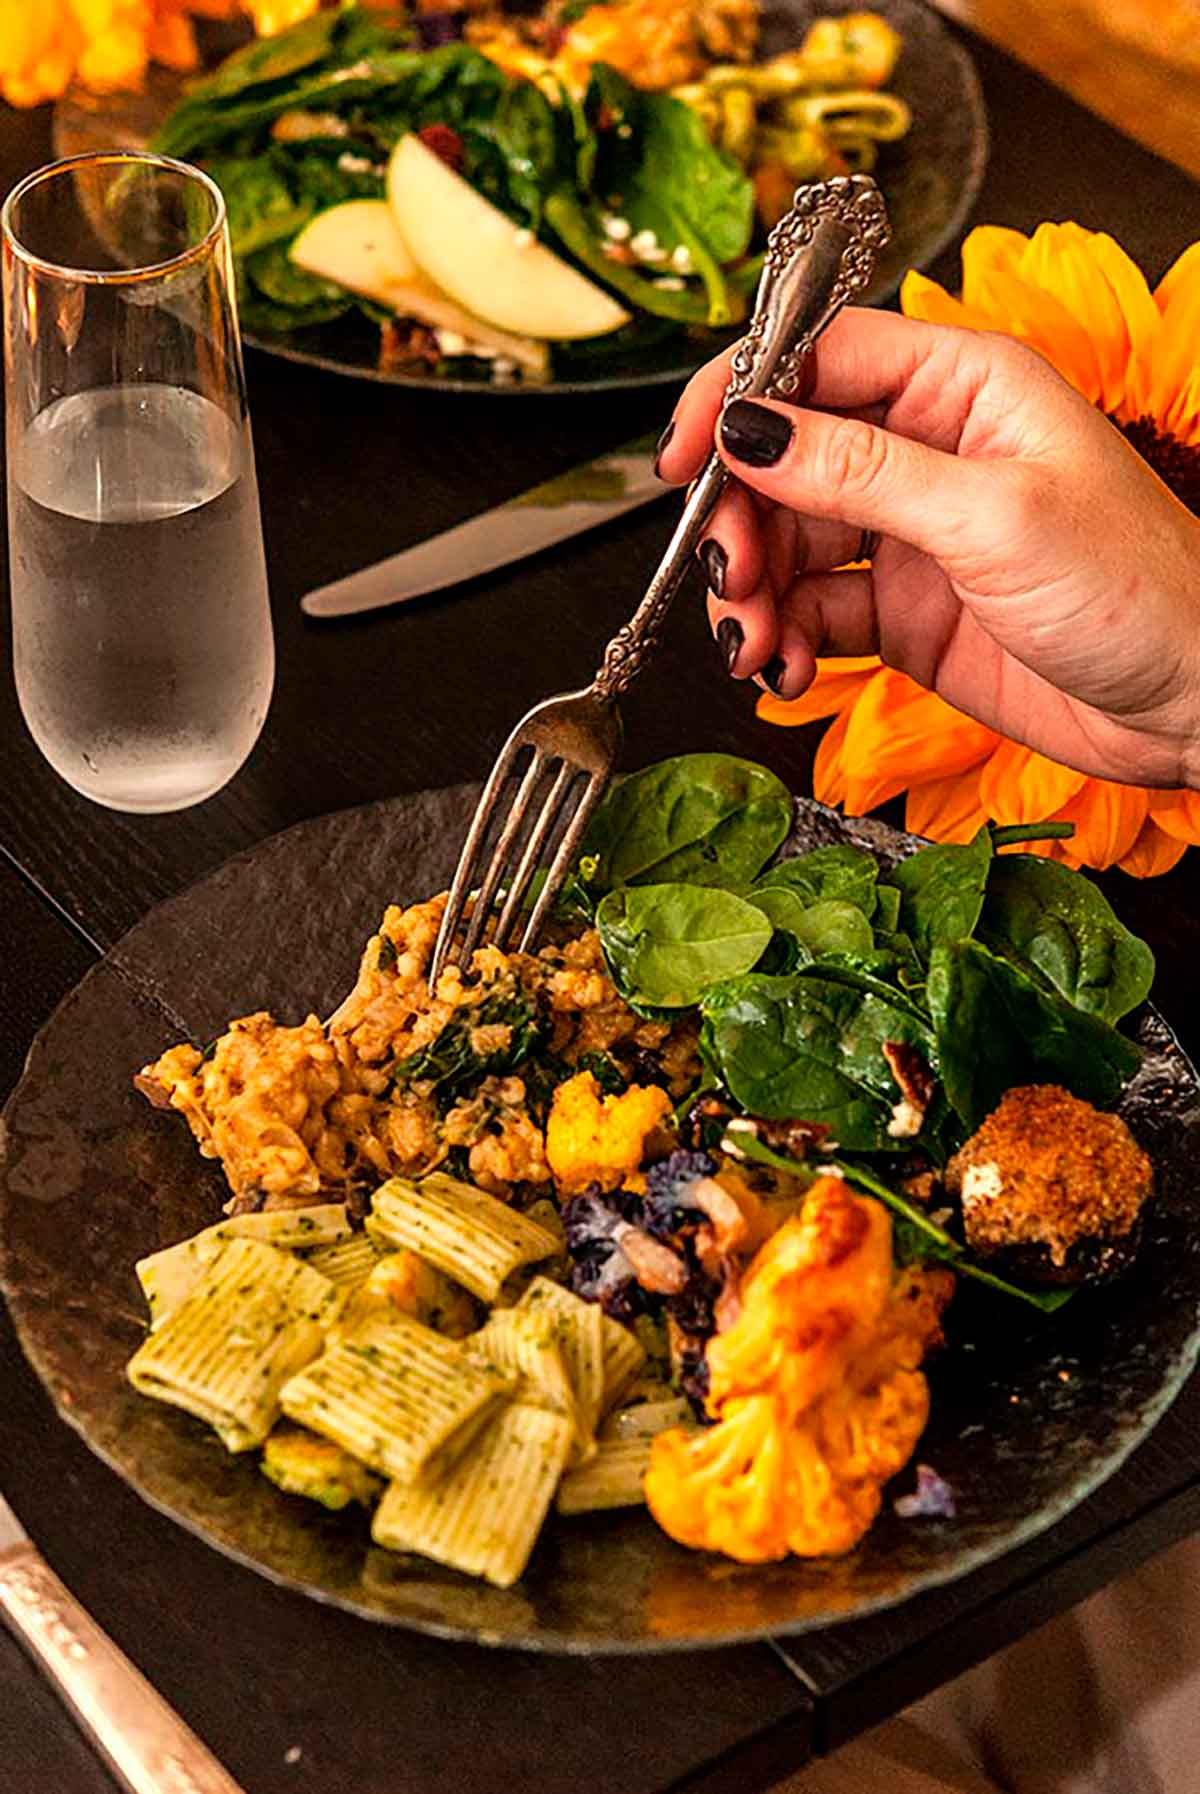 A hand holding an antique fork above a plate full of food with a sunflower and other plates of food in the background.